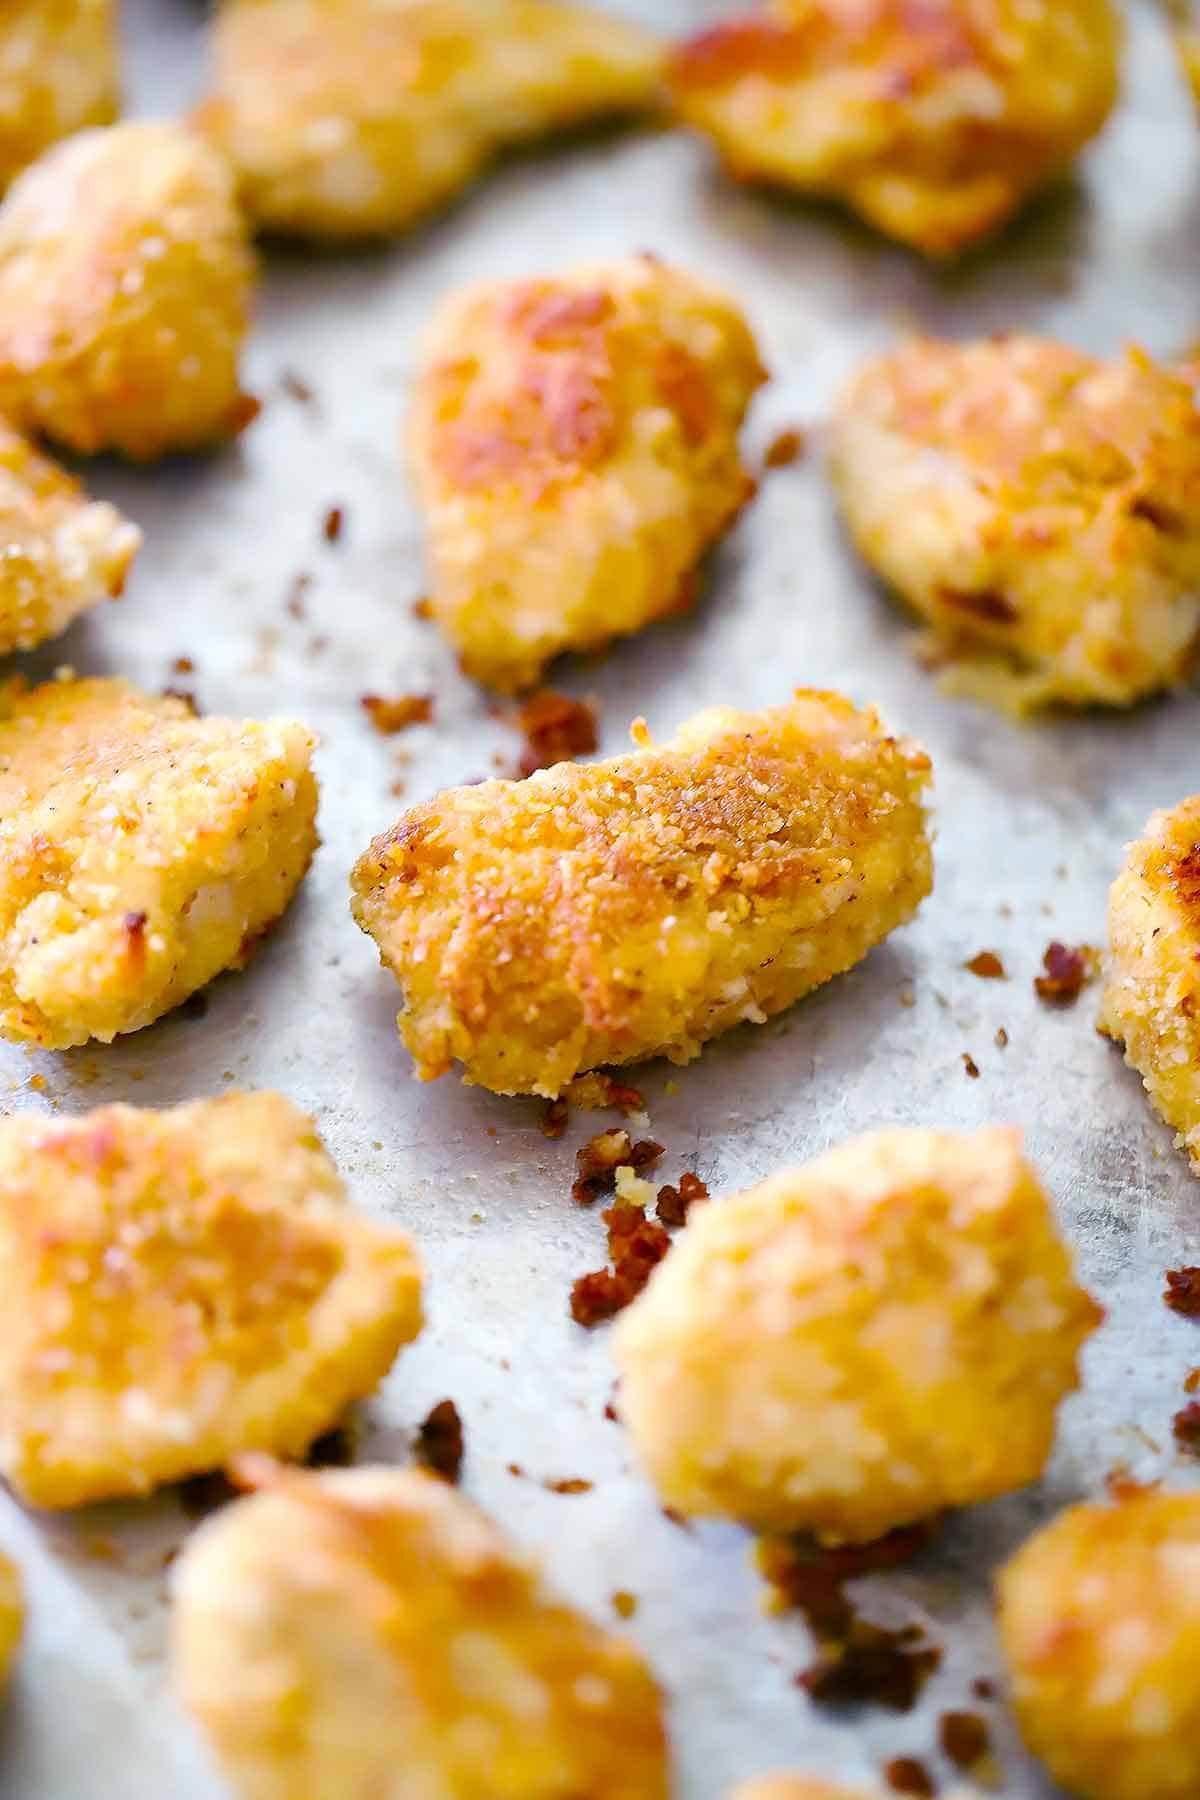 Chicken nuggets on a baking sheet.